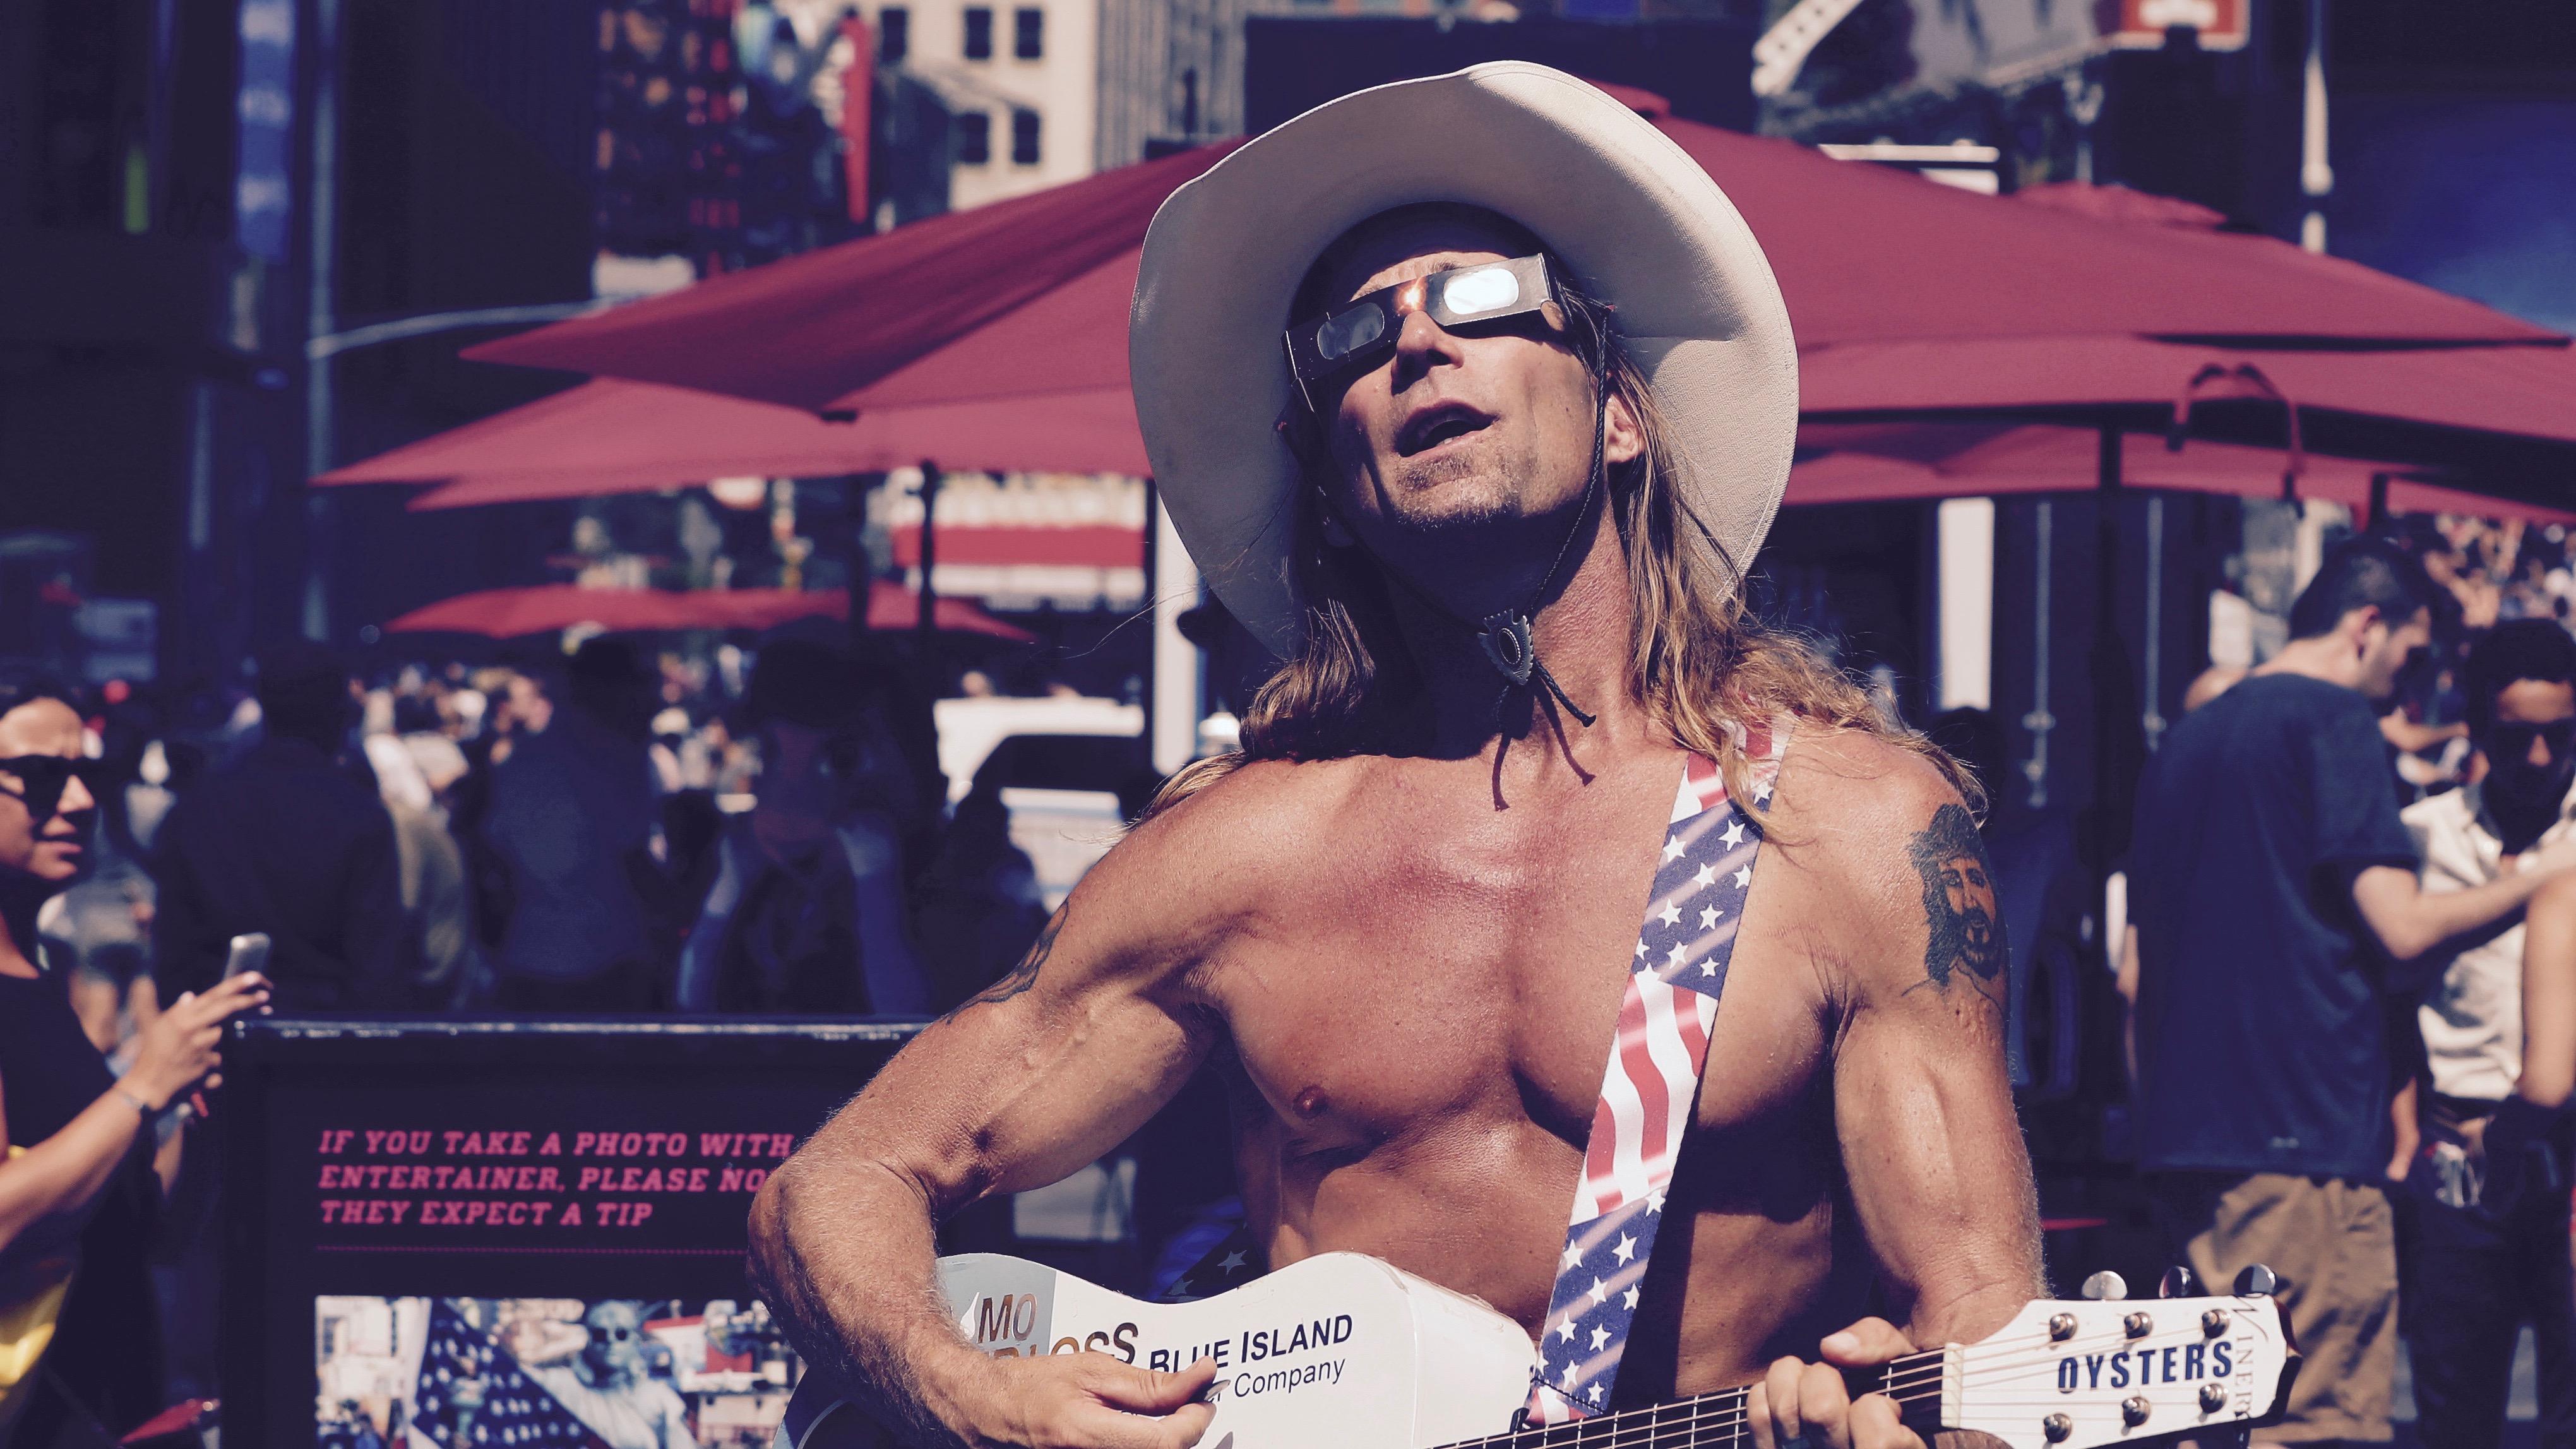 The NY Naked Cowboy plays his guitar while wearing special solar viewers.